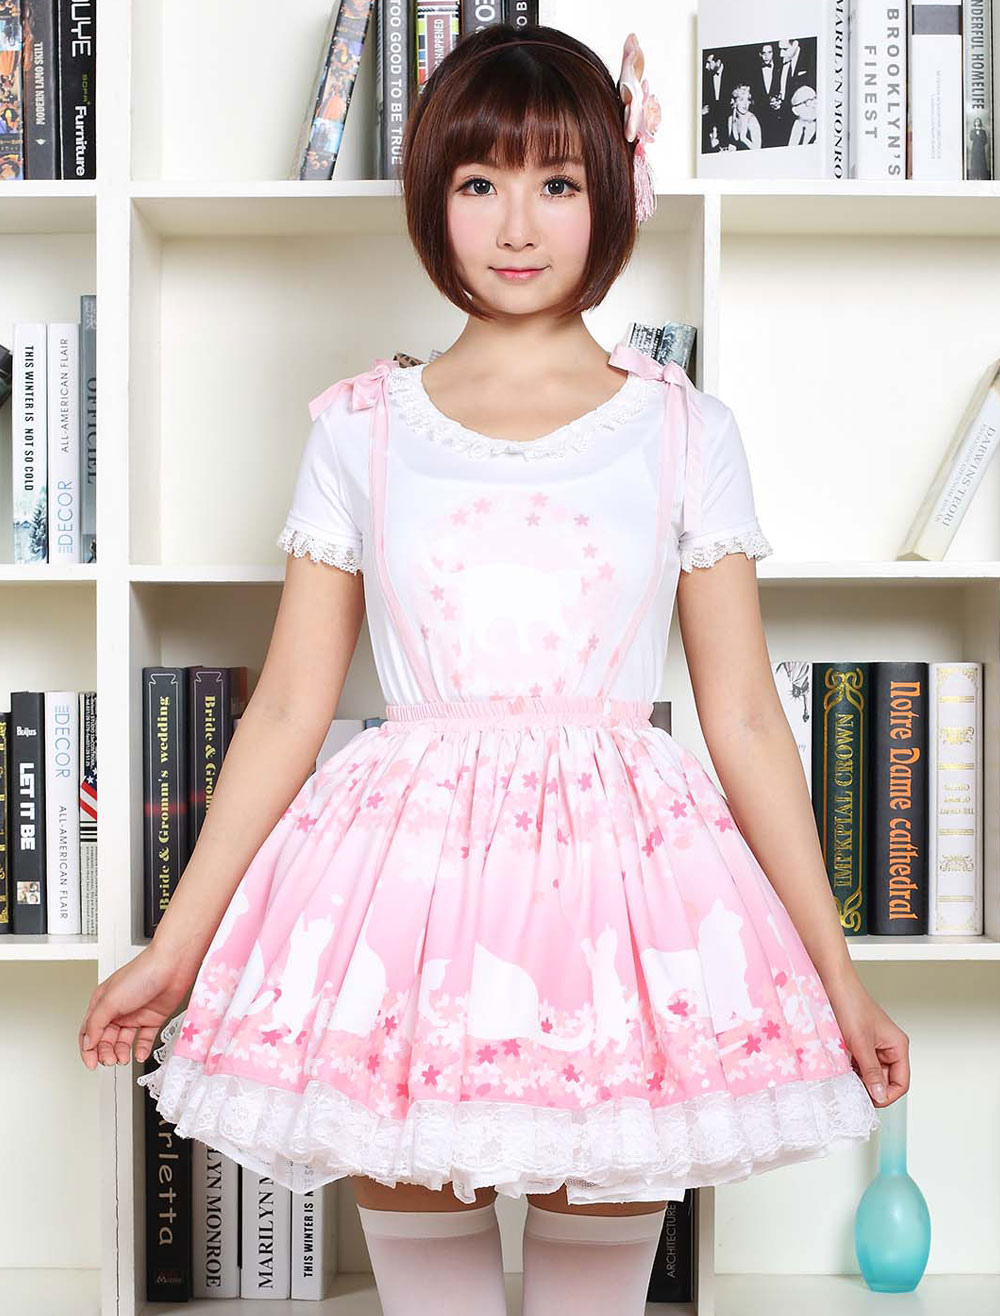 Buy Sweet Lolita Dress SK Pink Lolita Dress The Cat Under The Tree Printed Lace Hem Lolita Skirt for $45.99 in Milanoo store